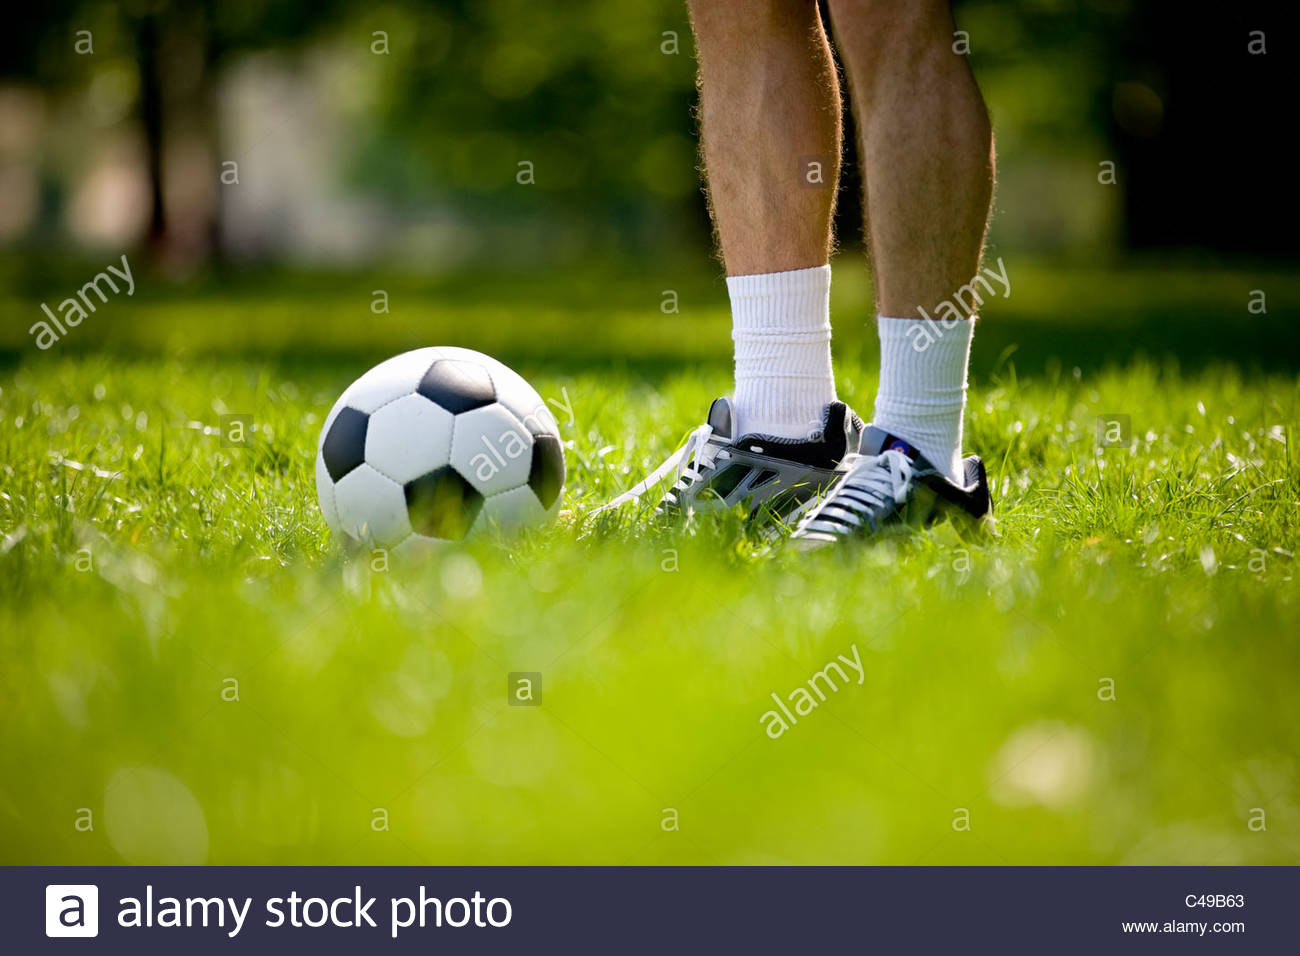 A young man standing next to a football, close-up - Stock Image